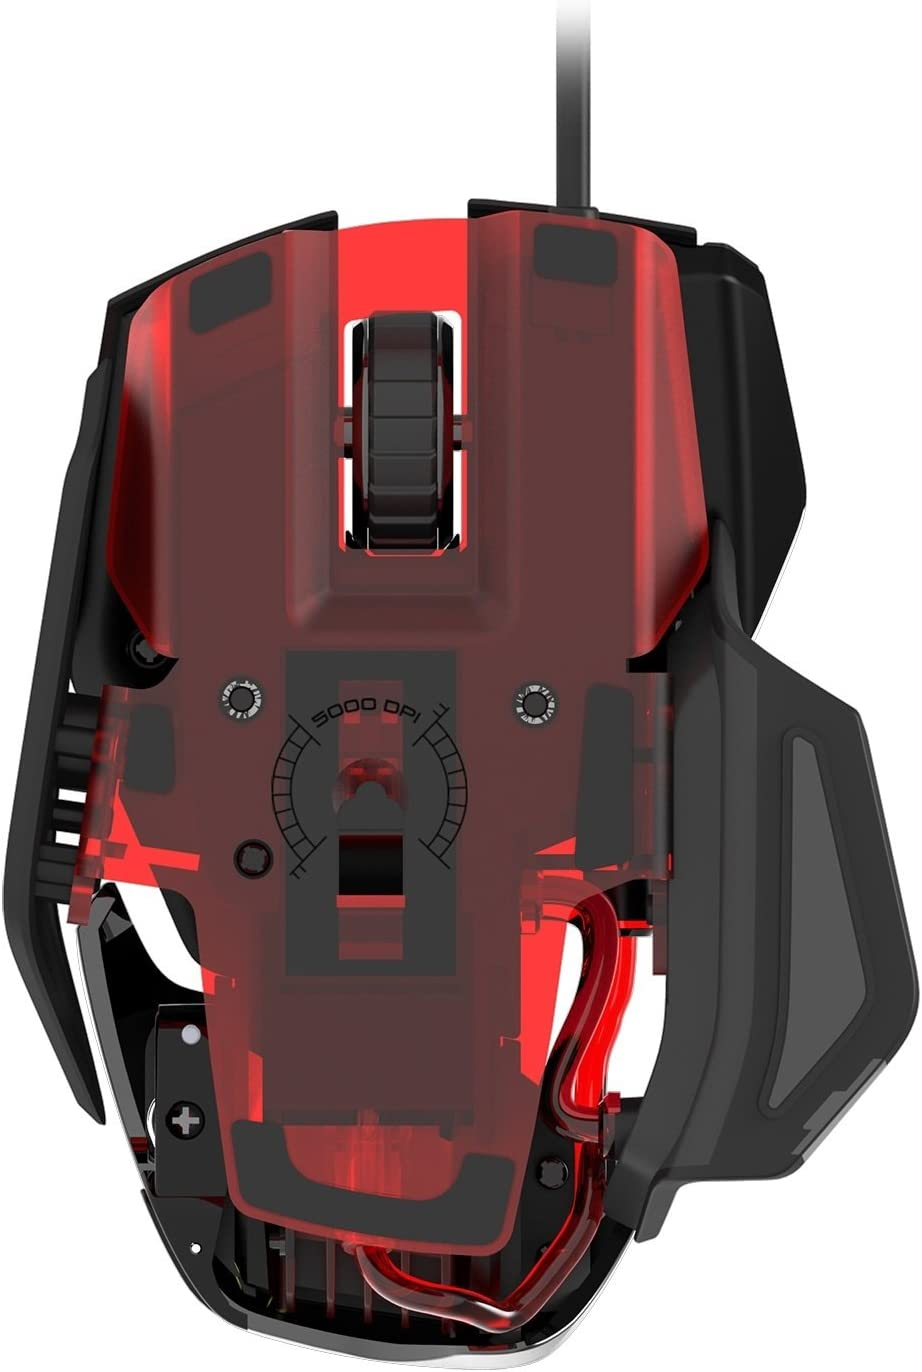 Adjustable Mad Catz RAT4 Wired Optical USB LED RGB Mouse with 9 Programmable Buttons Black